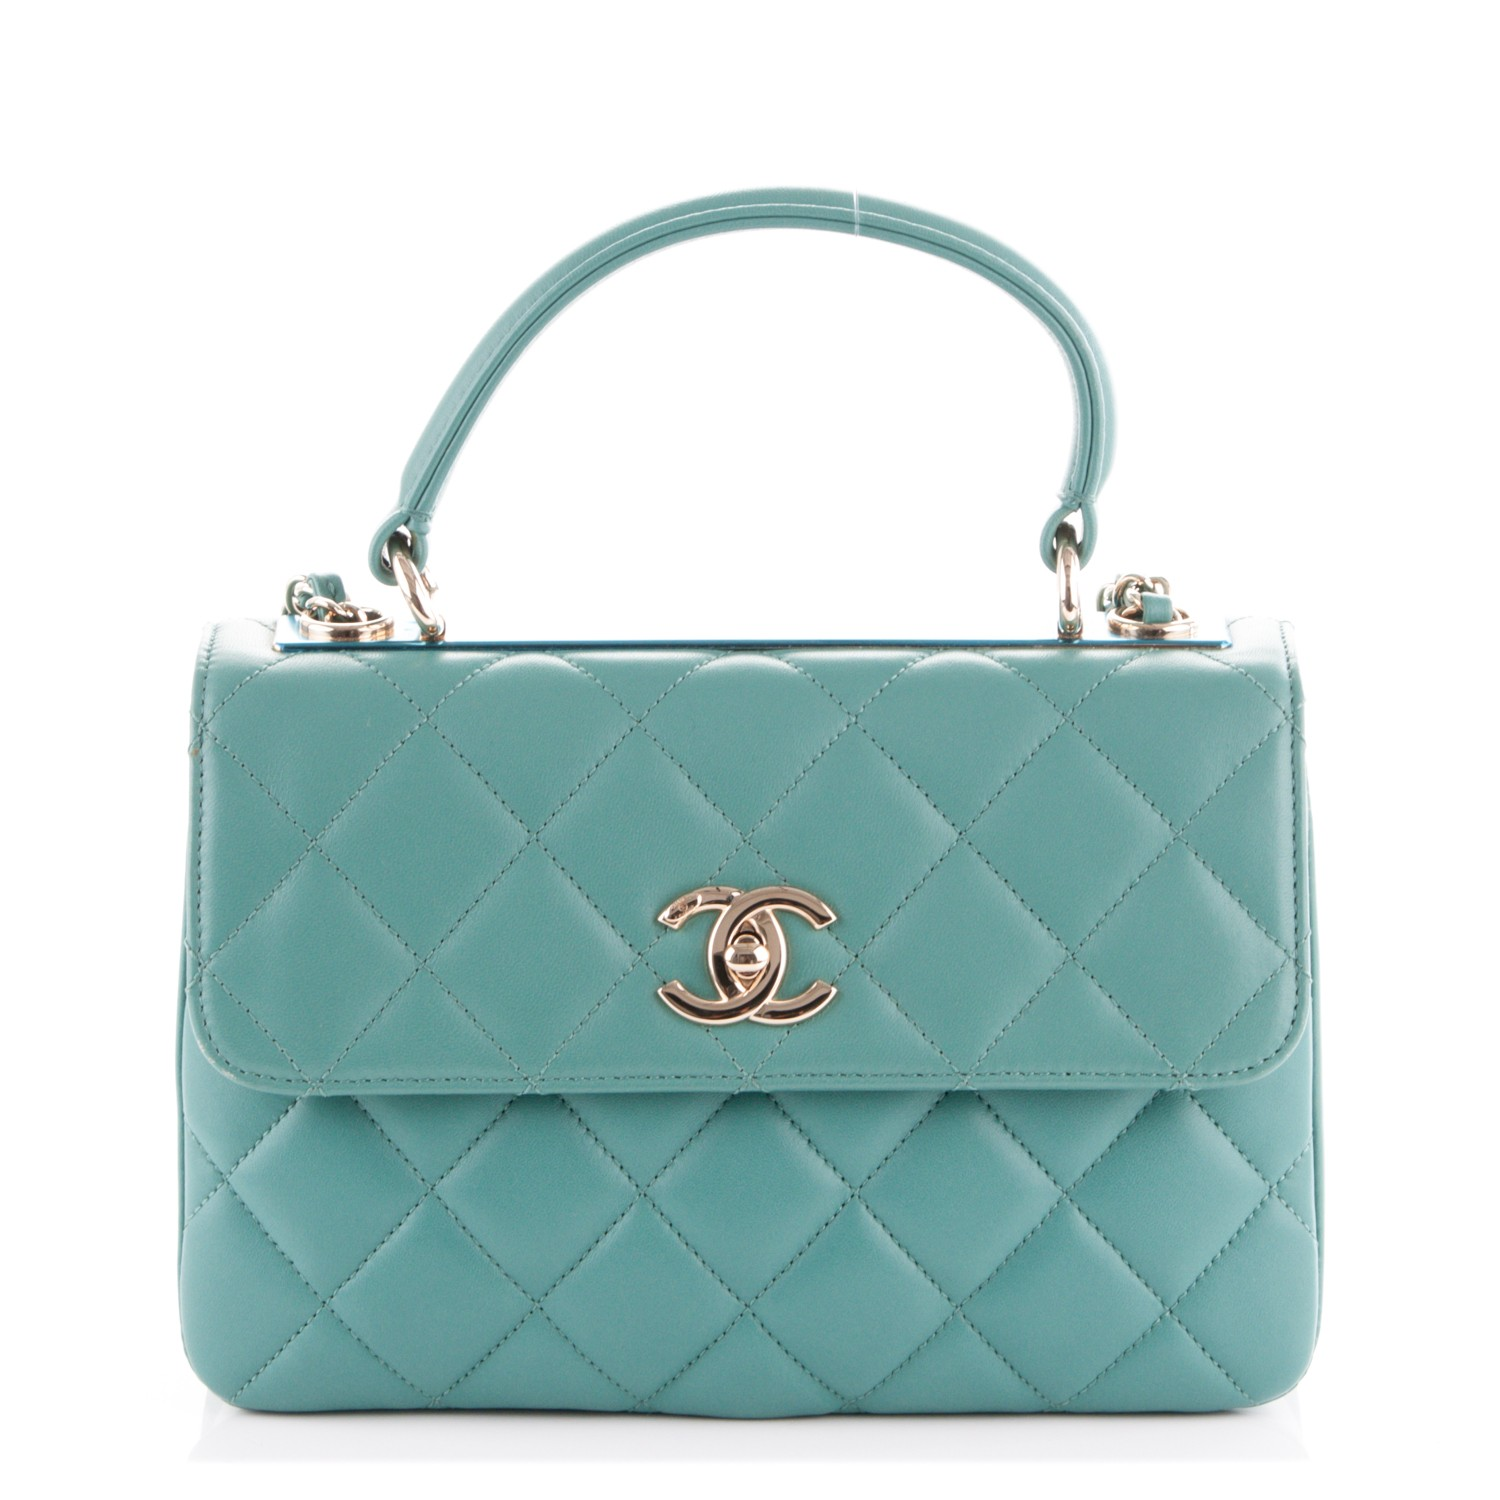 484214d445cb CHANEL Lambskin Quilted Small Trendy CC Flap Dual Handle Bag Light Green  172936